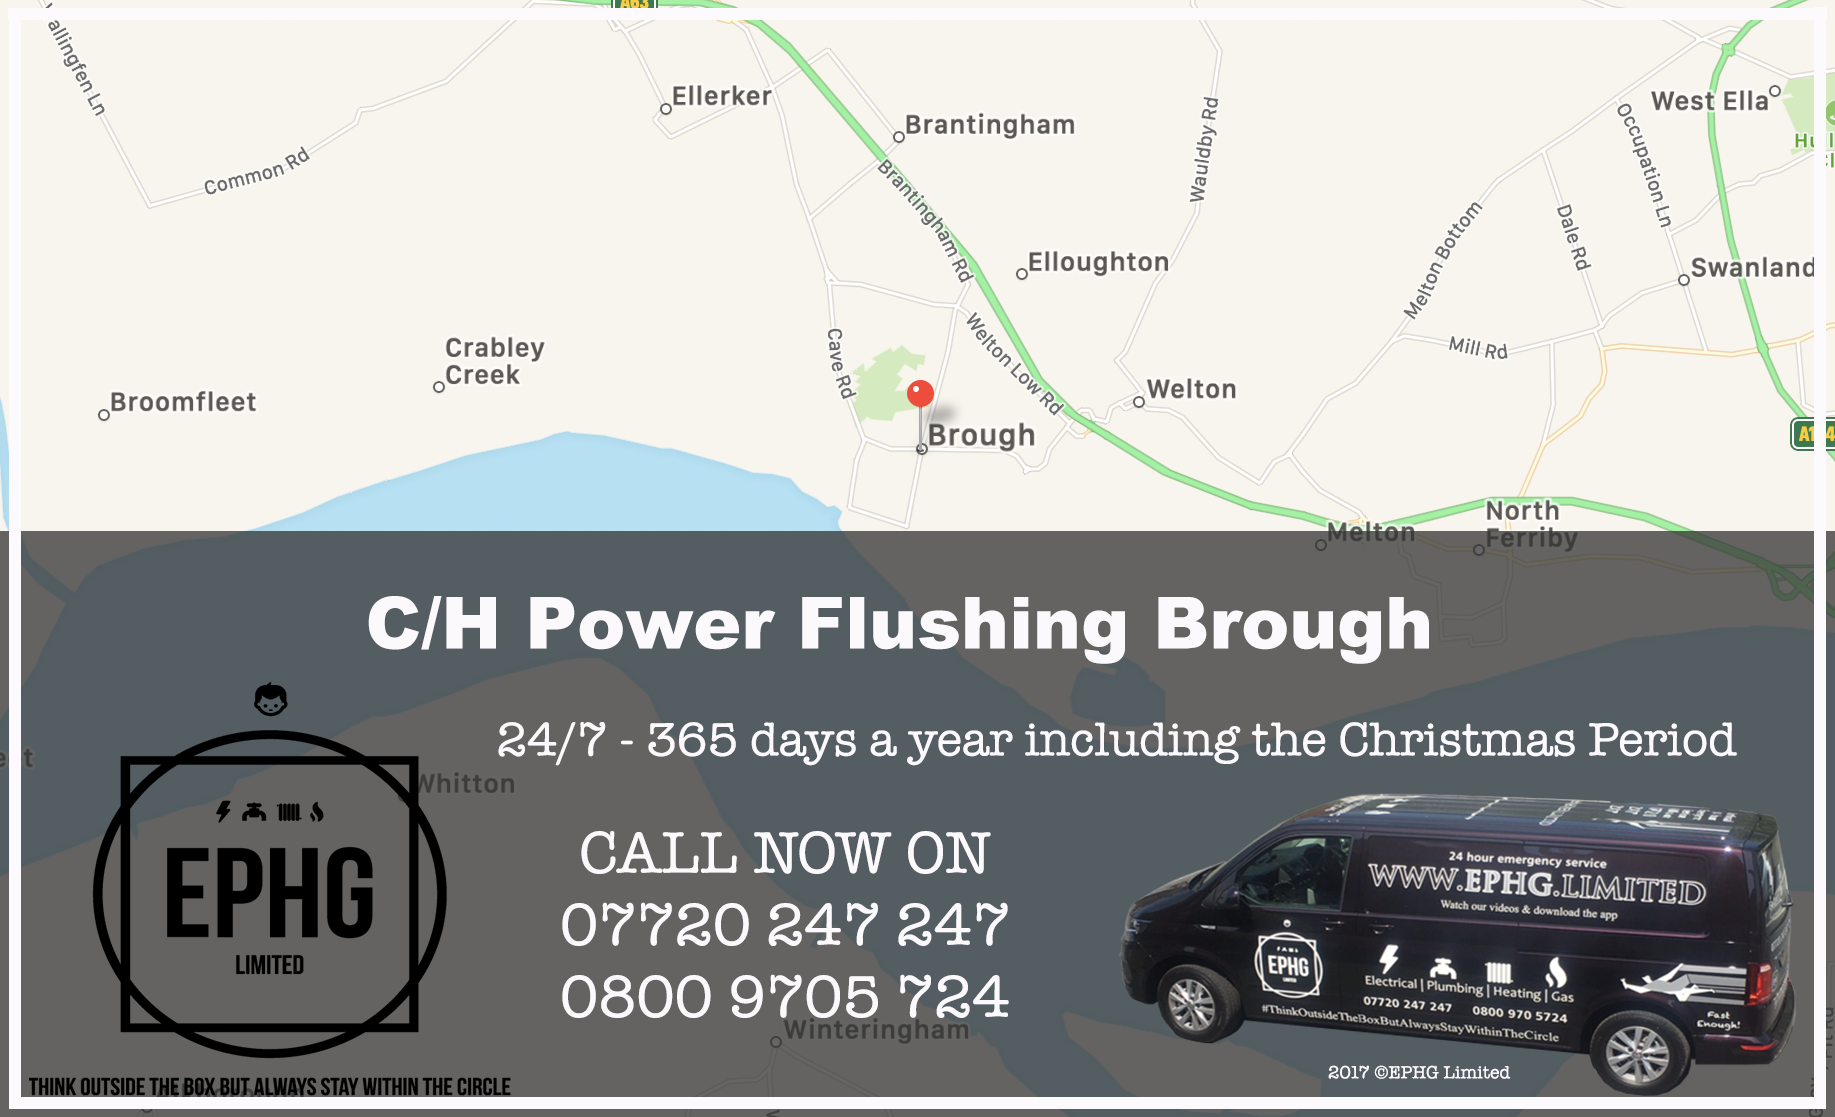 Central Heating Power Flush Brough